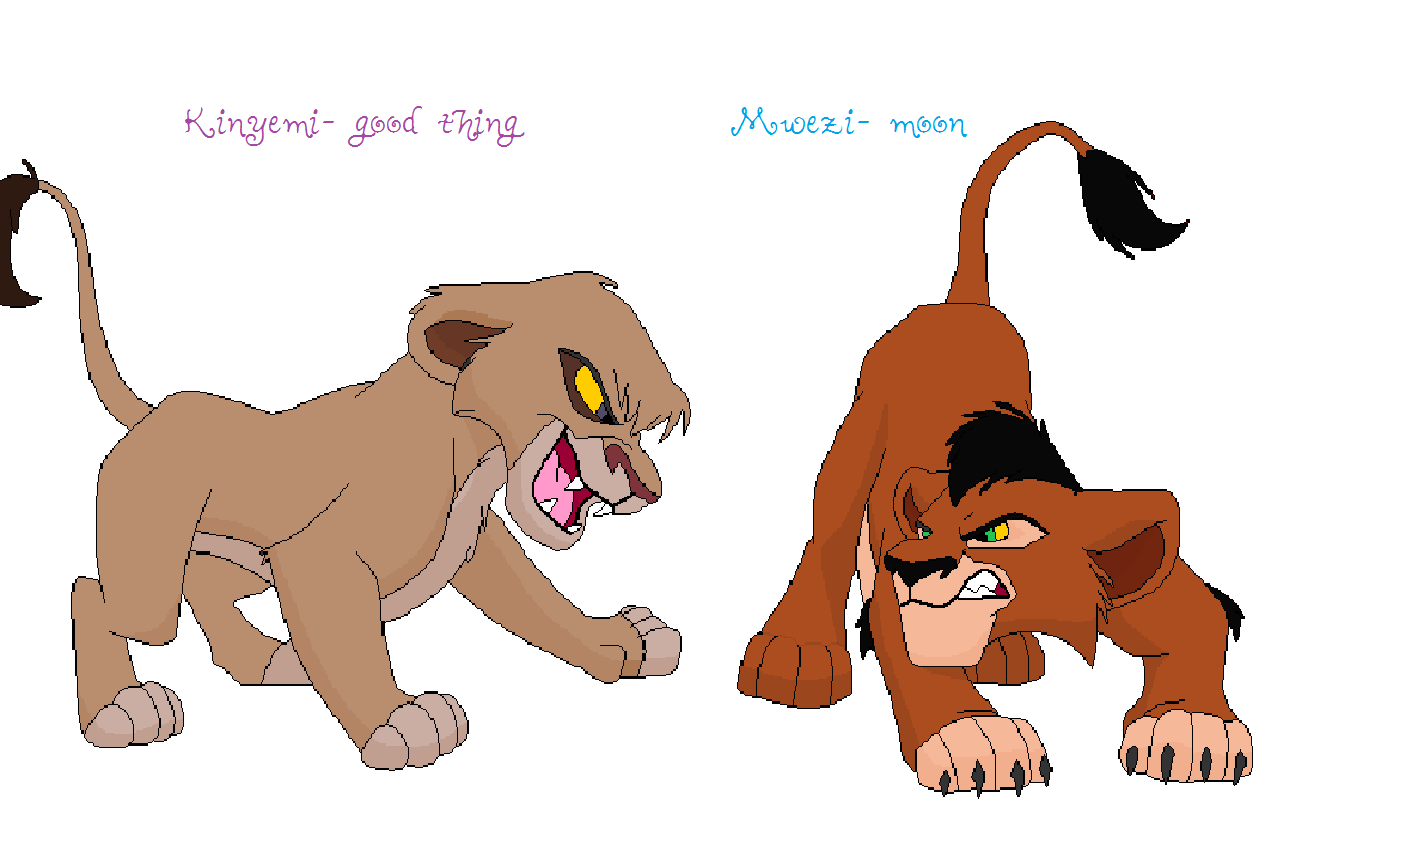 Lion king scar and mufasa together on lionkingclub4777 deviantart